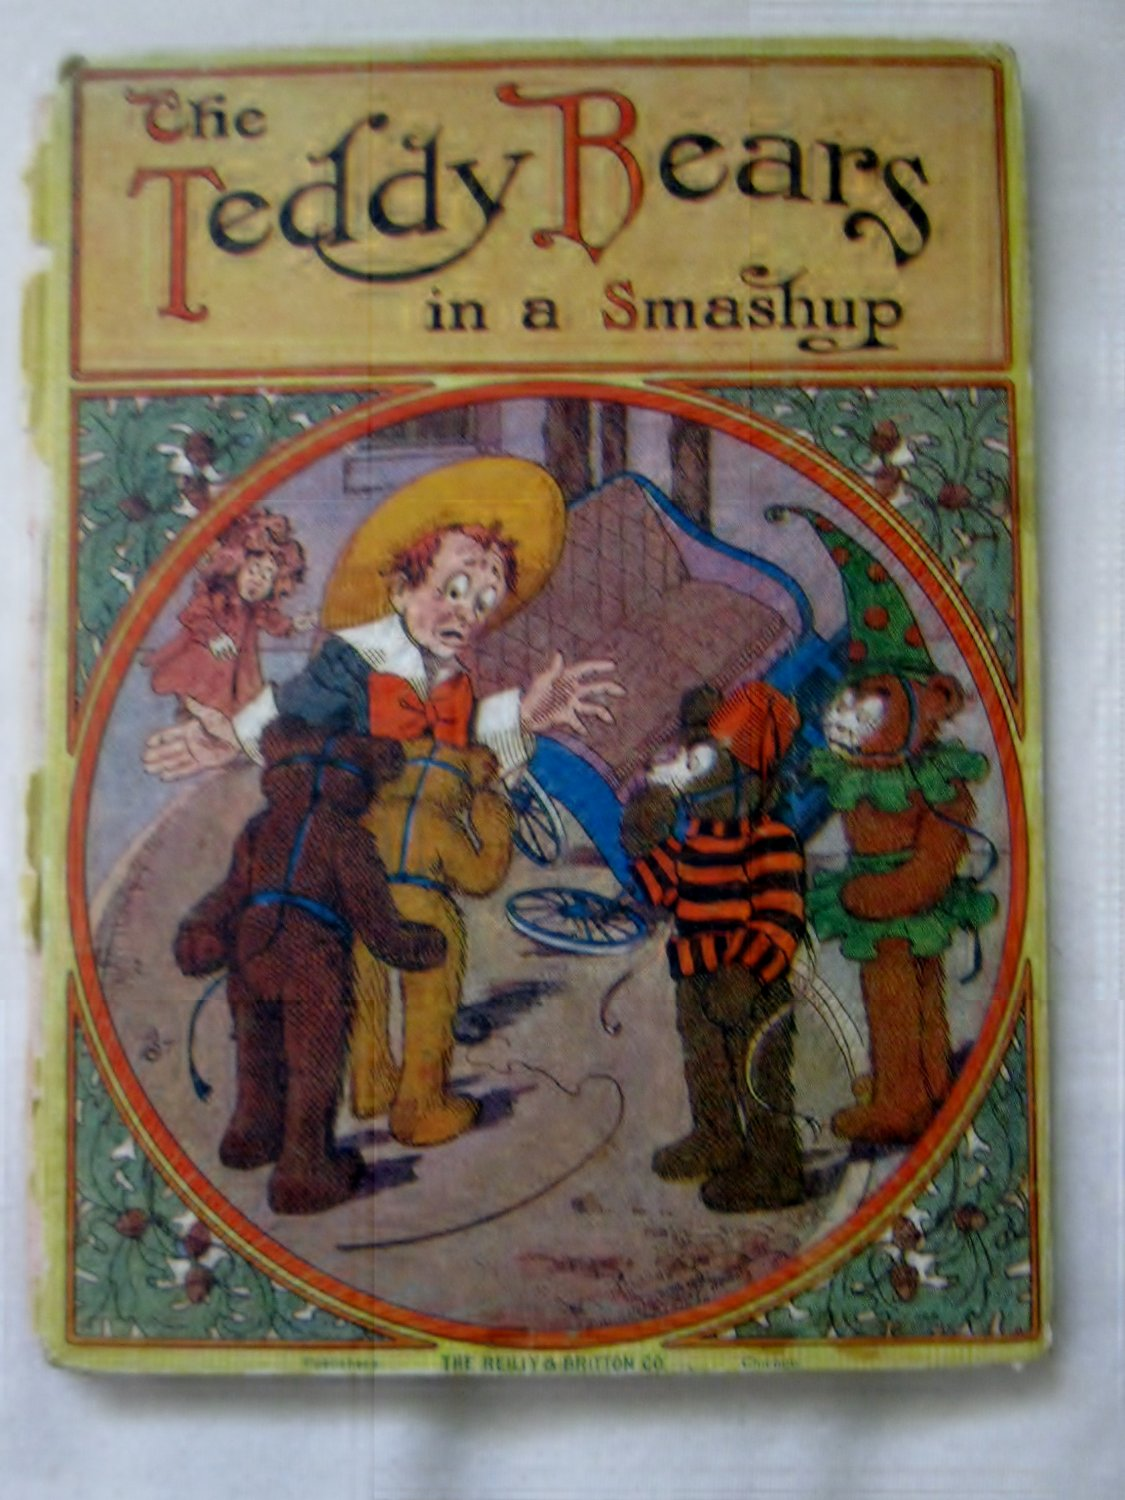 1907 THE TEDDY BEARS IN A SMASHUP